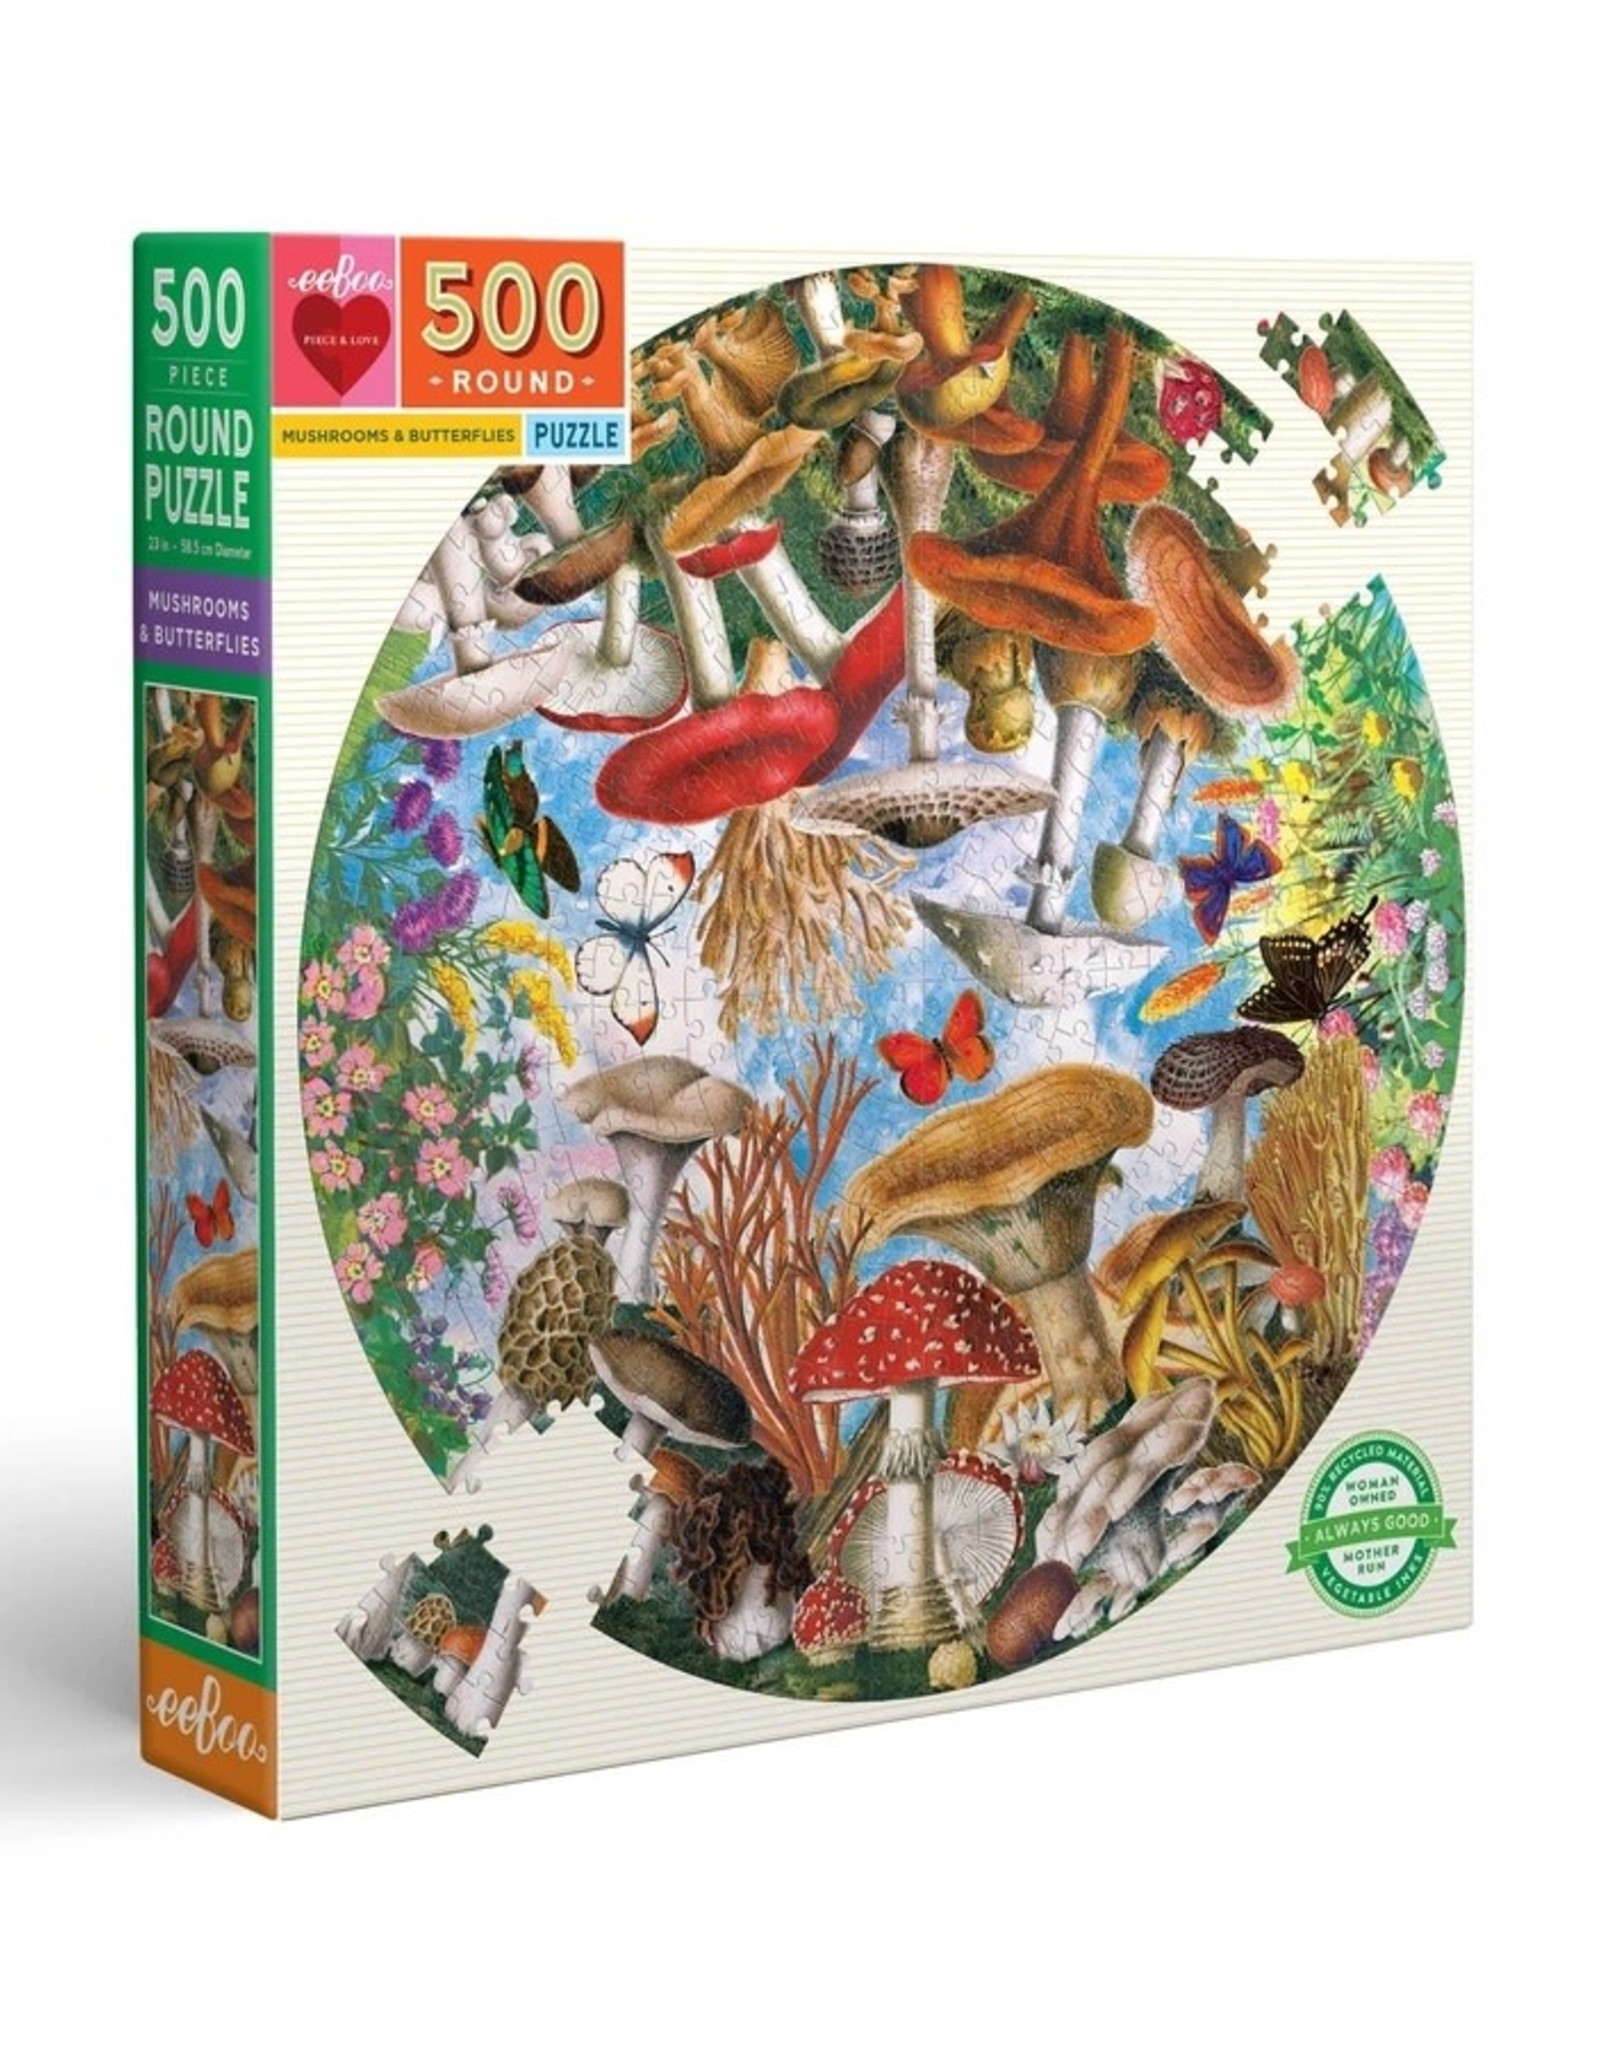 Eeboo 500pc Round Mushrooms and Butterflies Puzzle